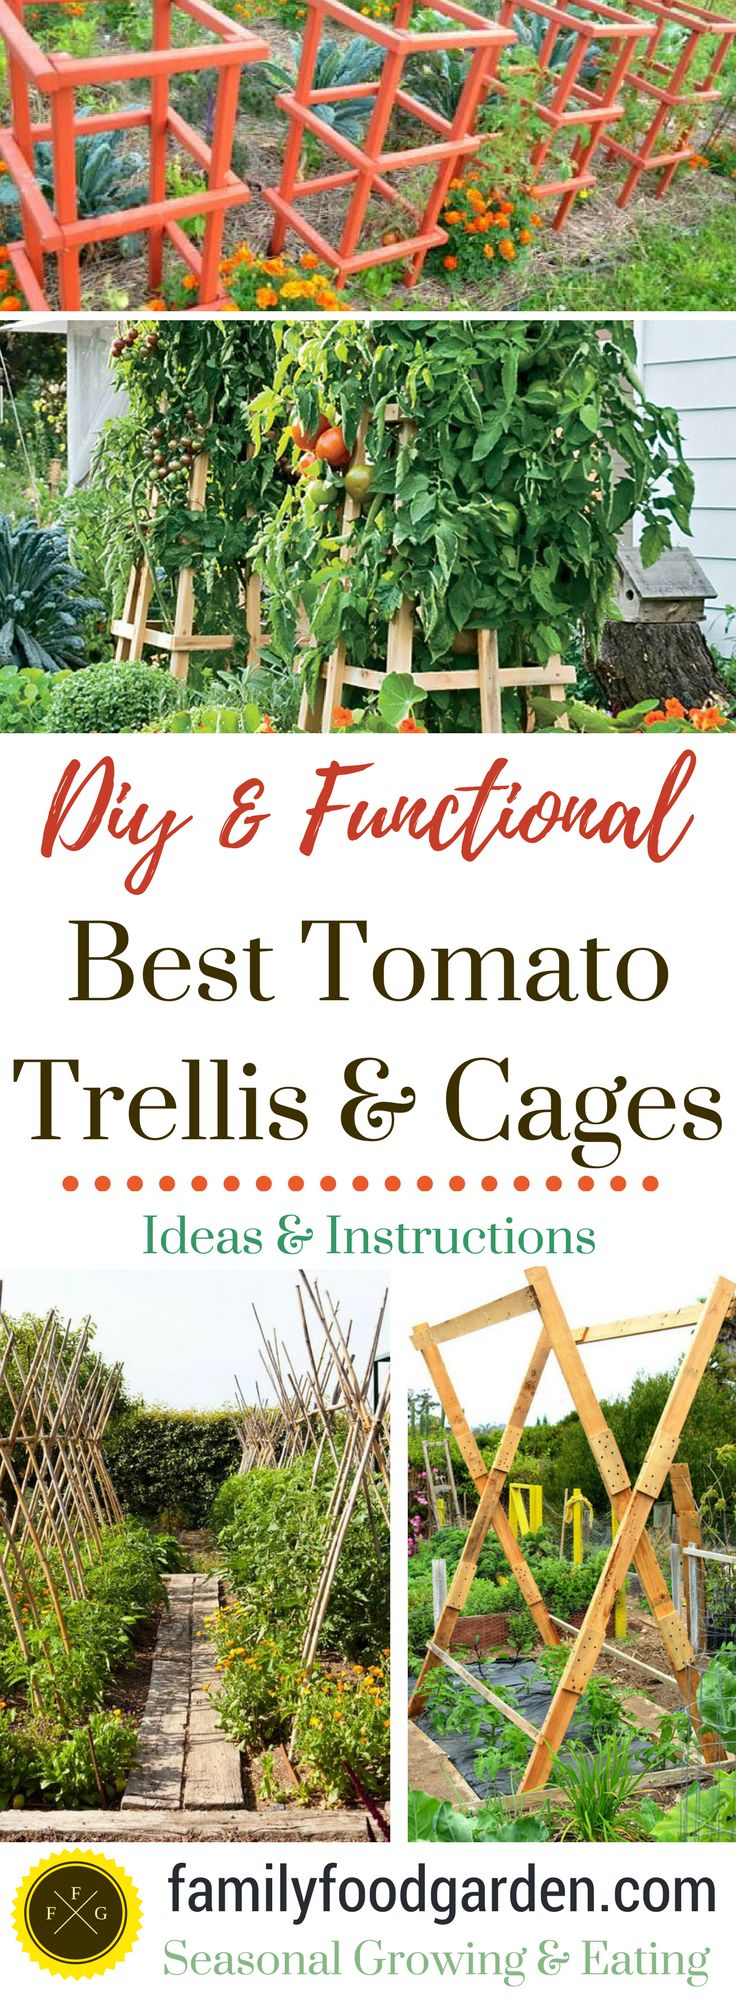 Best DIY tomato trellis & cages